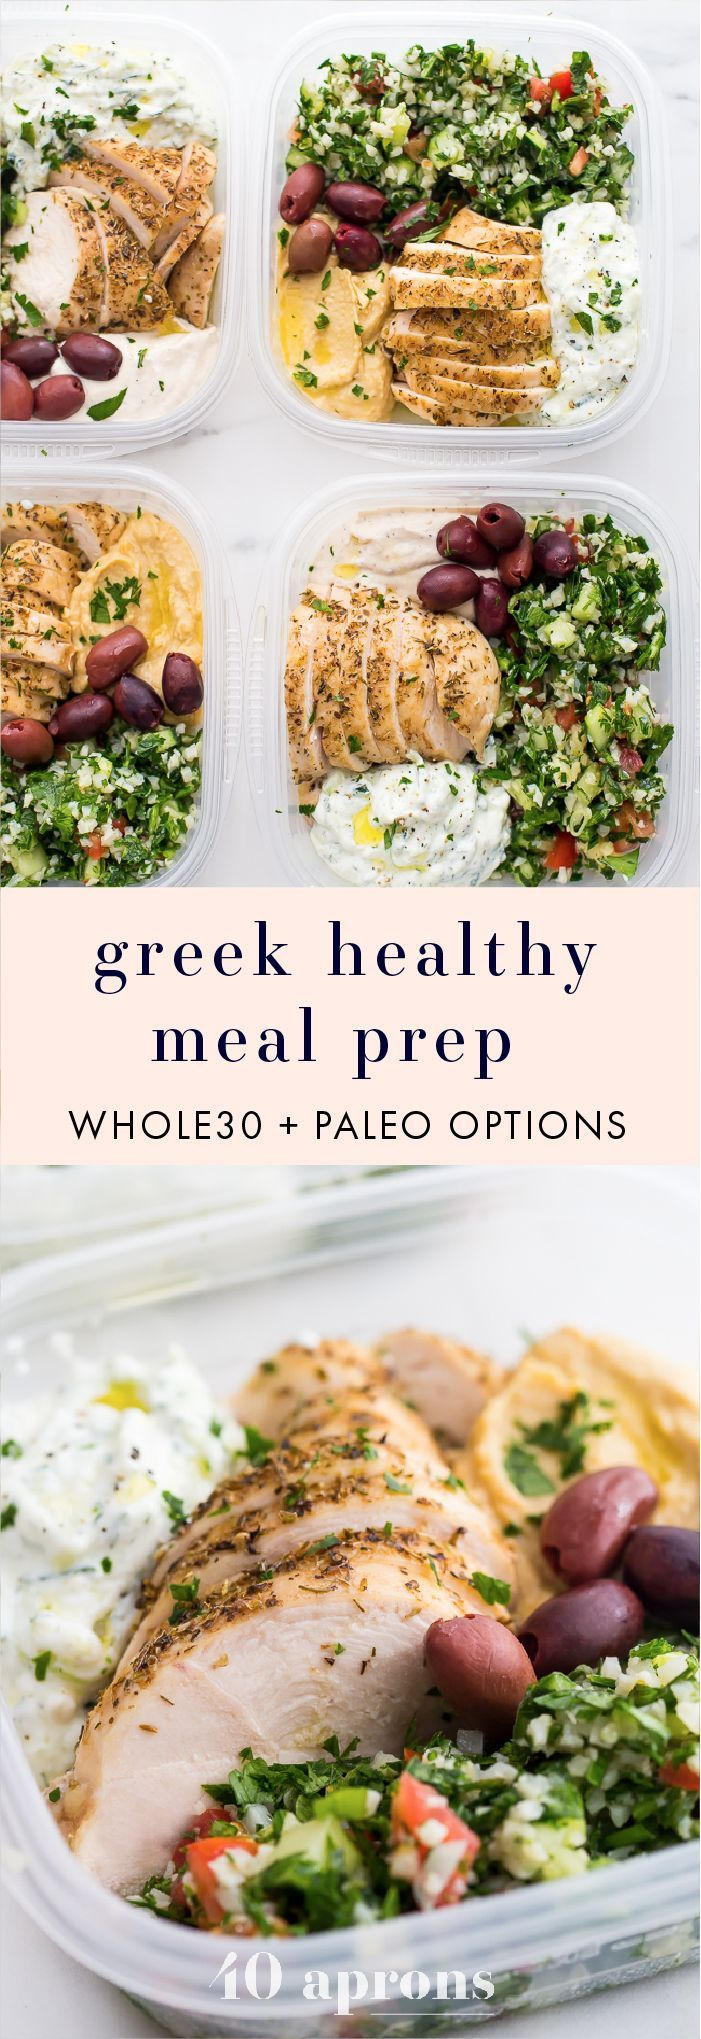 Healthy Meal Prep This Greek healthy meal prep recipe is epic: cauliflower rice tabbouleh, tender seasoned chicken breasts, hummus or baba ganoush, kalamata olives, and a rich, garlicky tzatziki. This healthy meal prep recipe will have you looking forward to lunch all morning! It's also a Whole30 meal prep recipe and paleo meal prep recipe, too,